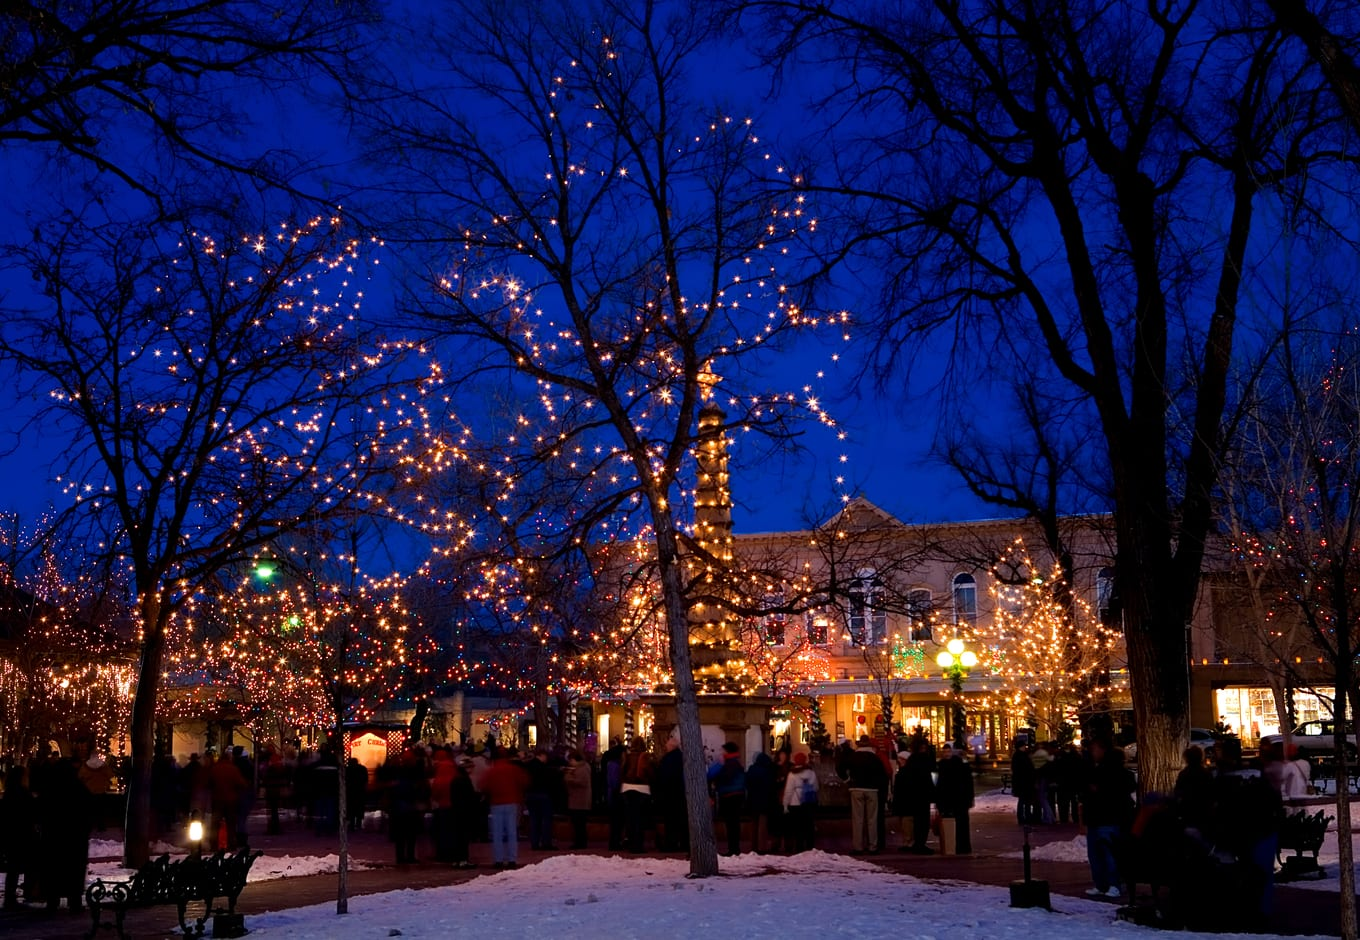 The square in Santa Fe sparkling with Christmas lights.